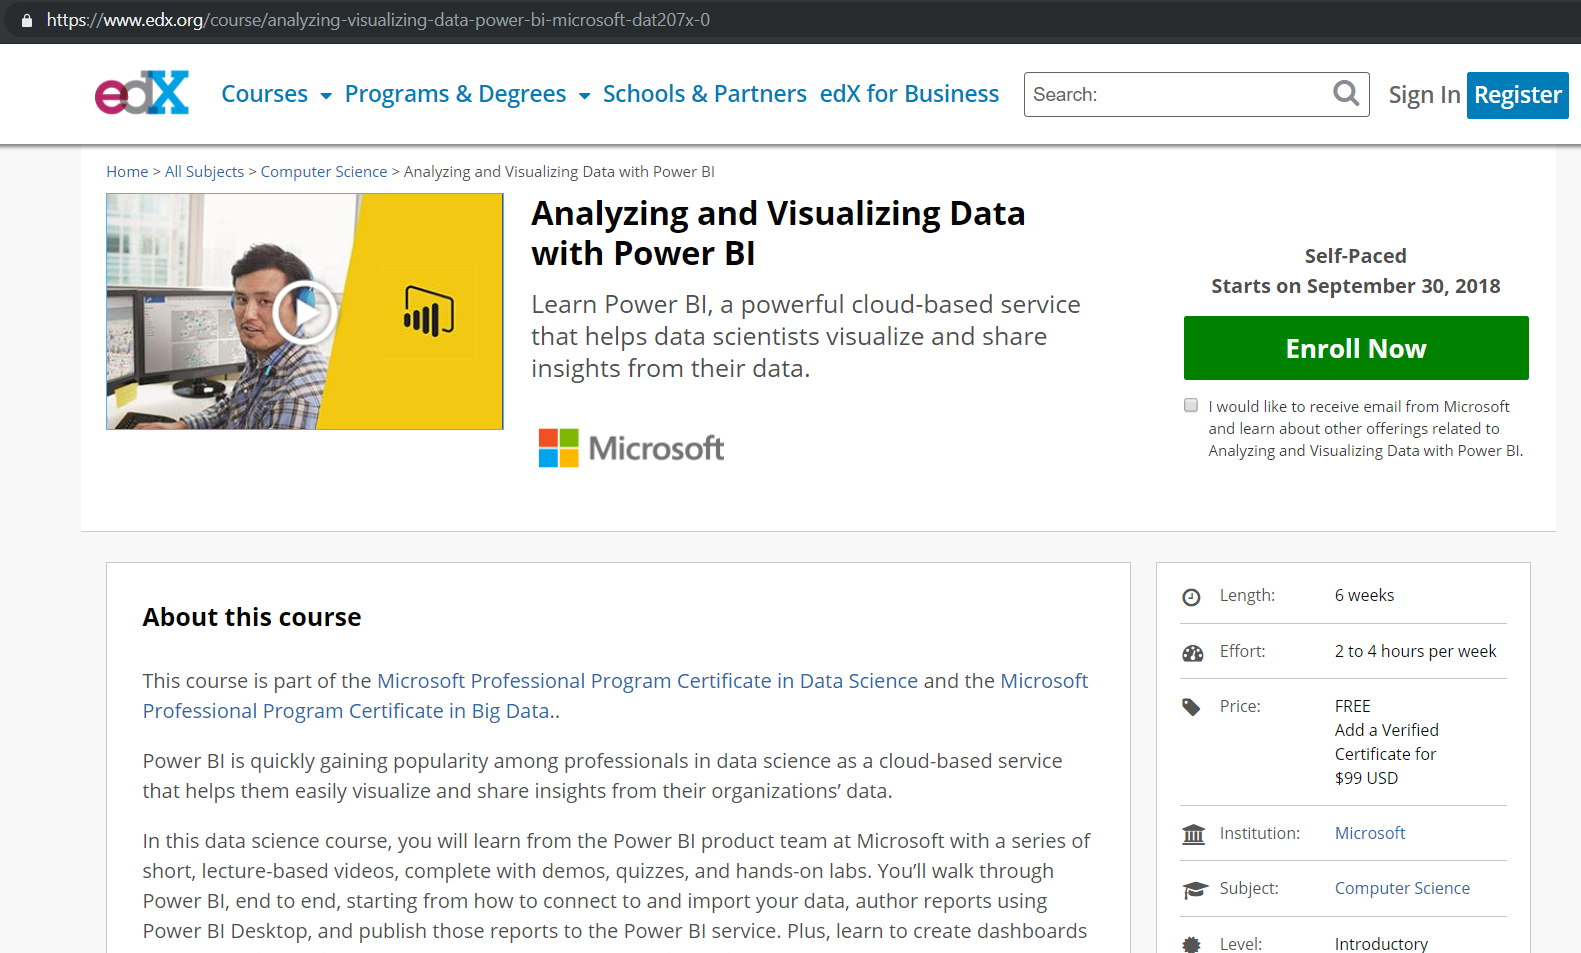 Thinking of Learning Power BI? Check Out My Top Learning